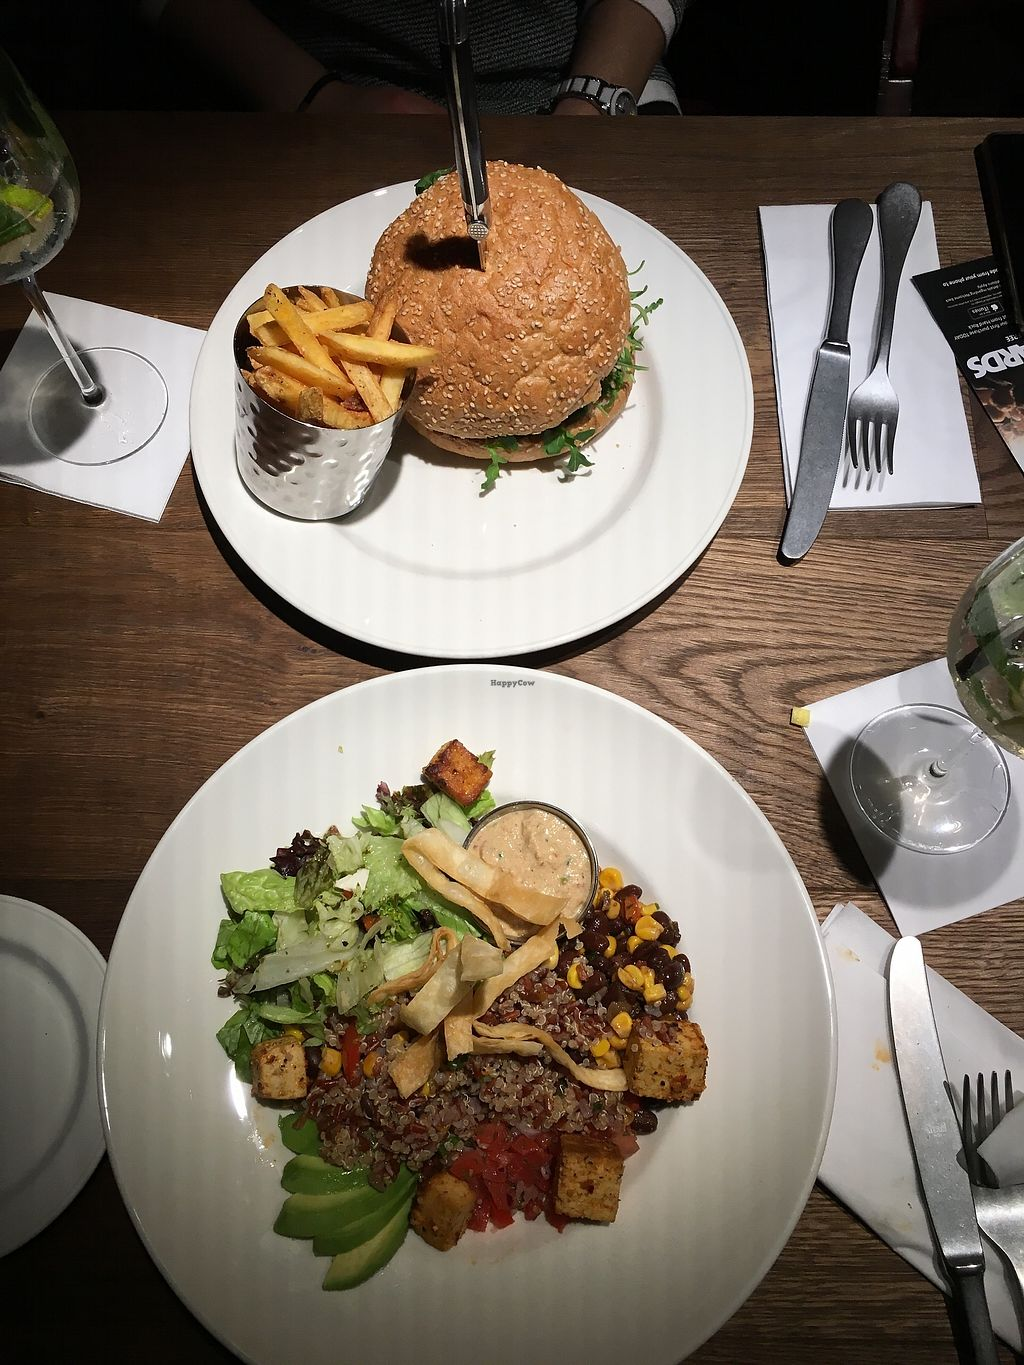 """Photo of Hard Rock Cafe  by <a href=""""/members/profile/ValentinaCarlotto"""">ValentinaCarlotto</a> <br/>Vegan burger & Southwest quinoa bowl <br/> February 7, 2018  - <a href='/contact/abuse/image/111536/356128'>Report</a>"""